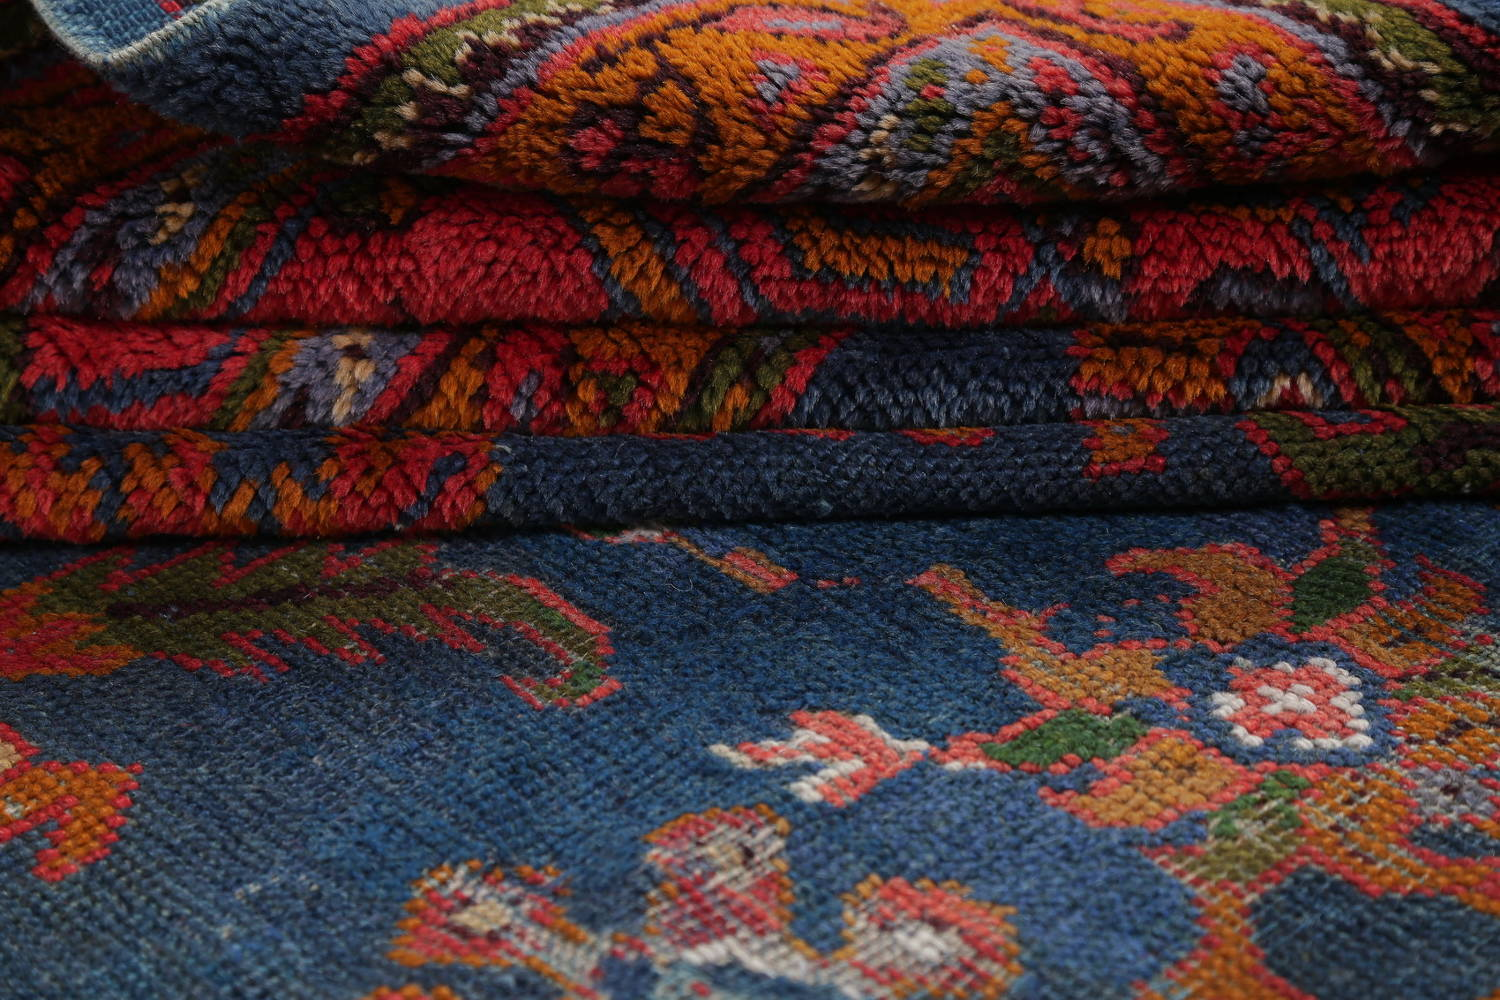 Antique Vegetable Dye Oushak Turkish Hand-Knotted Area Rug Wool 11x16 image 20